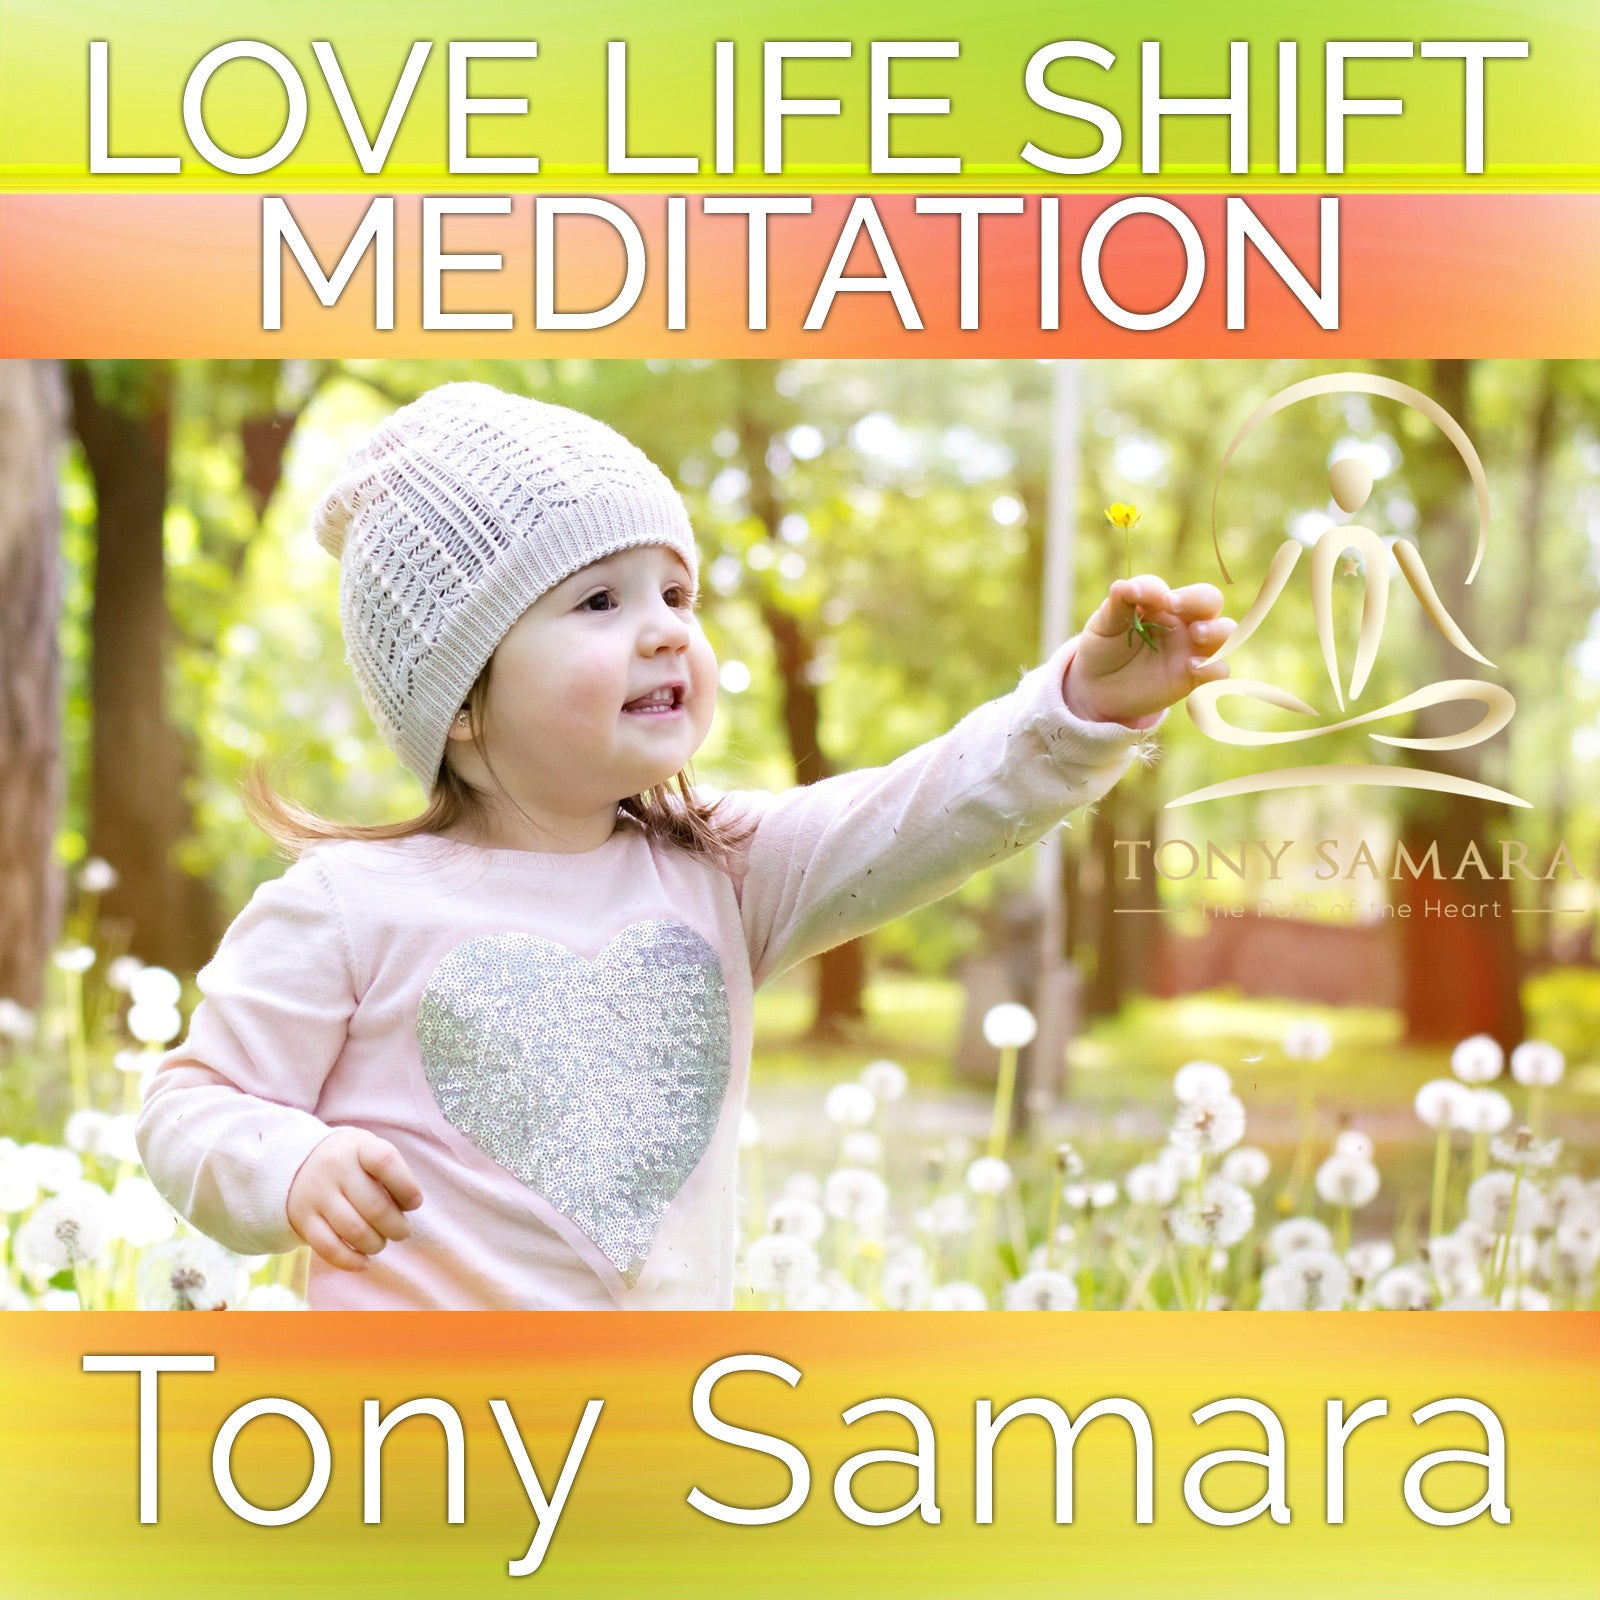 Love Life Shift Meditation (MP3 Audio Download) - Tony Samara Meditation